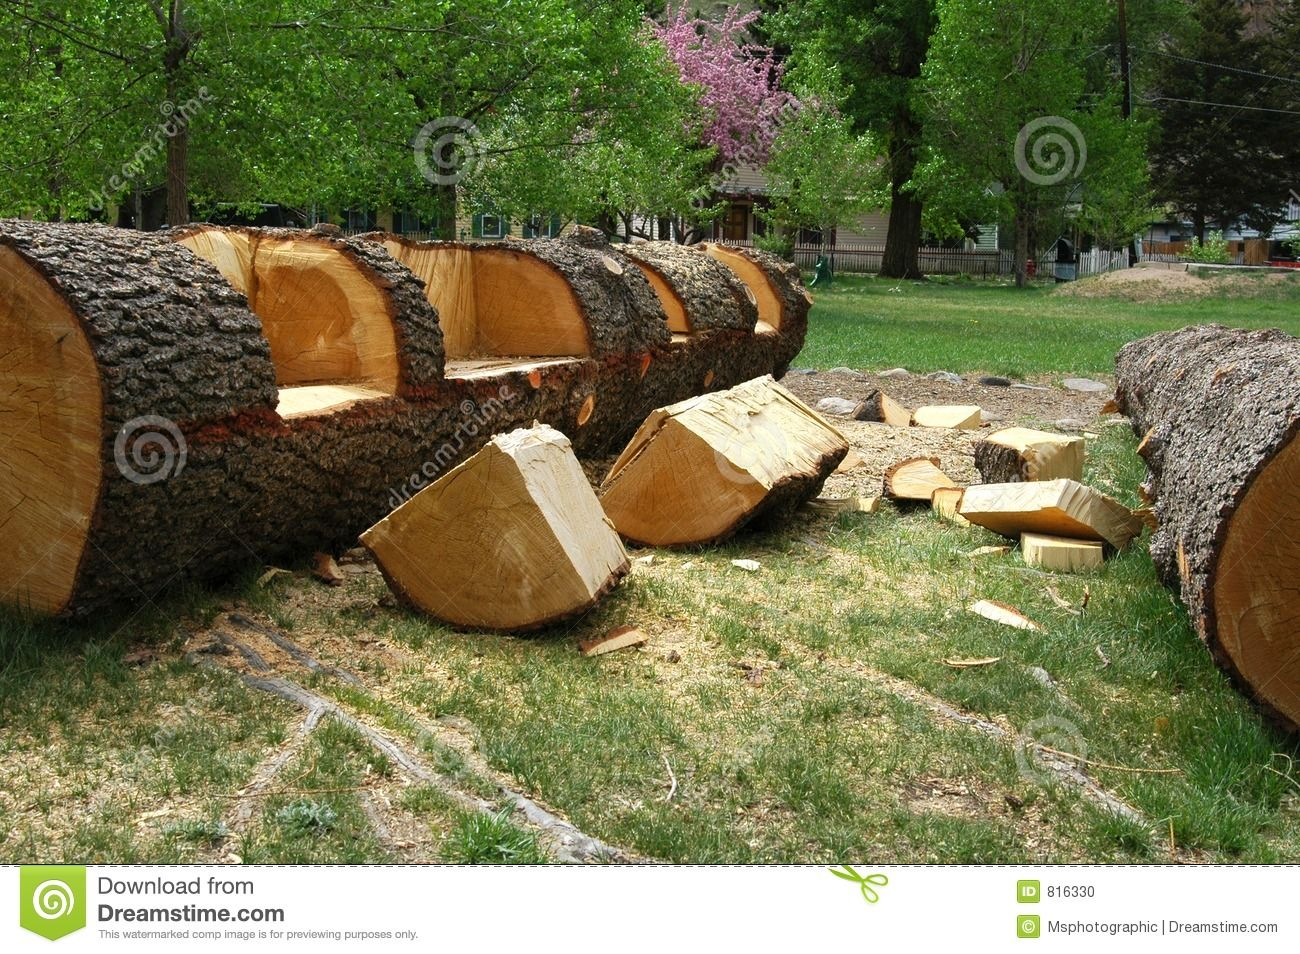 Log bench download from over 30 million high quality stock photos images vectors sign up - Log decor ideas let the nature in ...